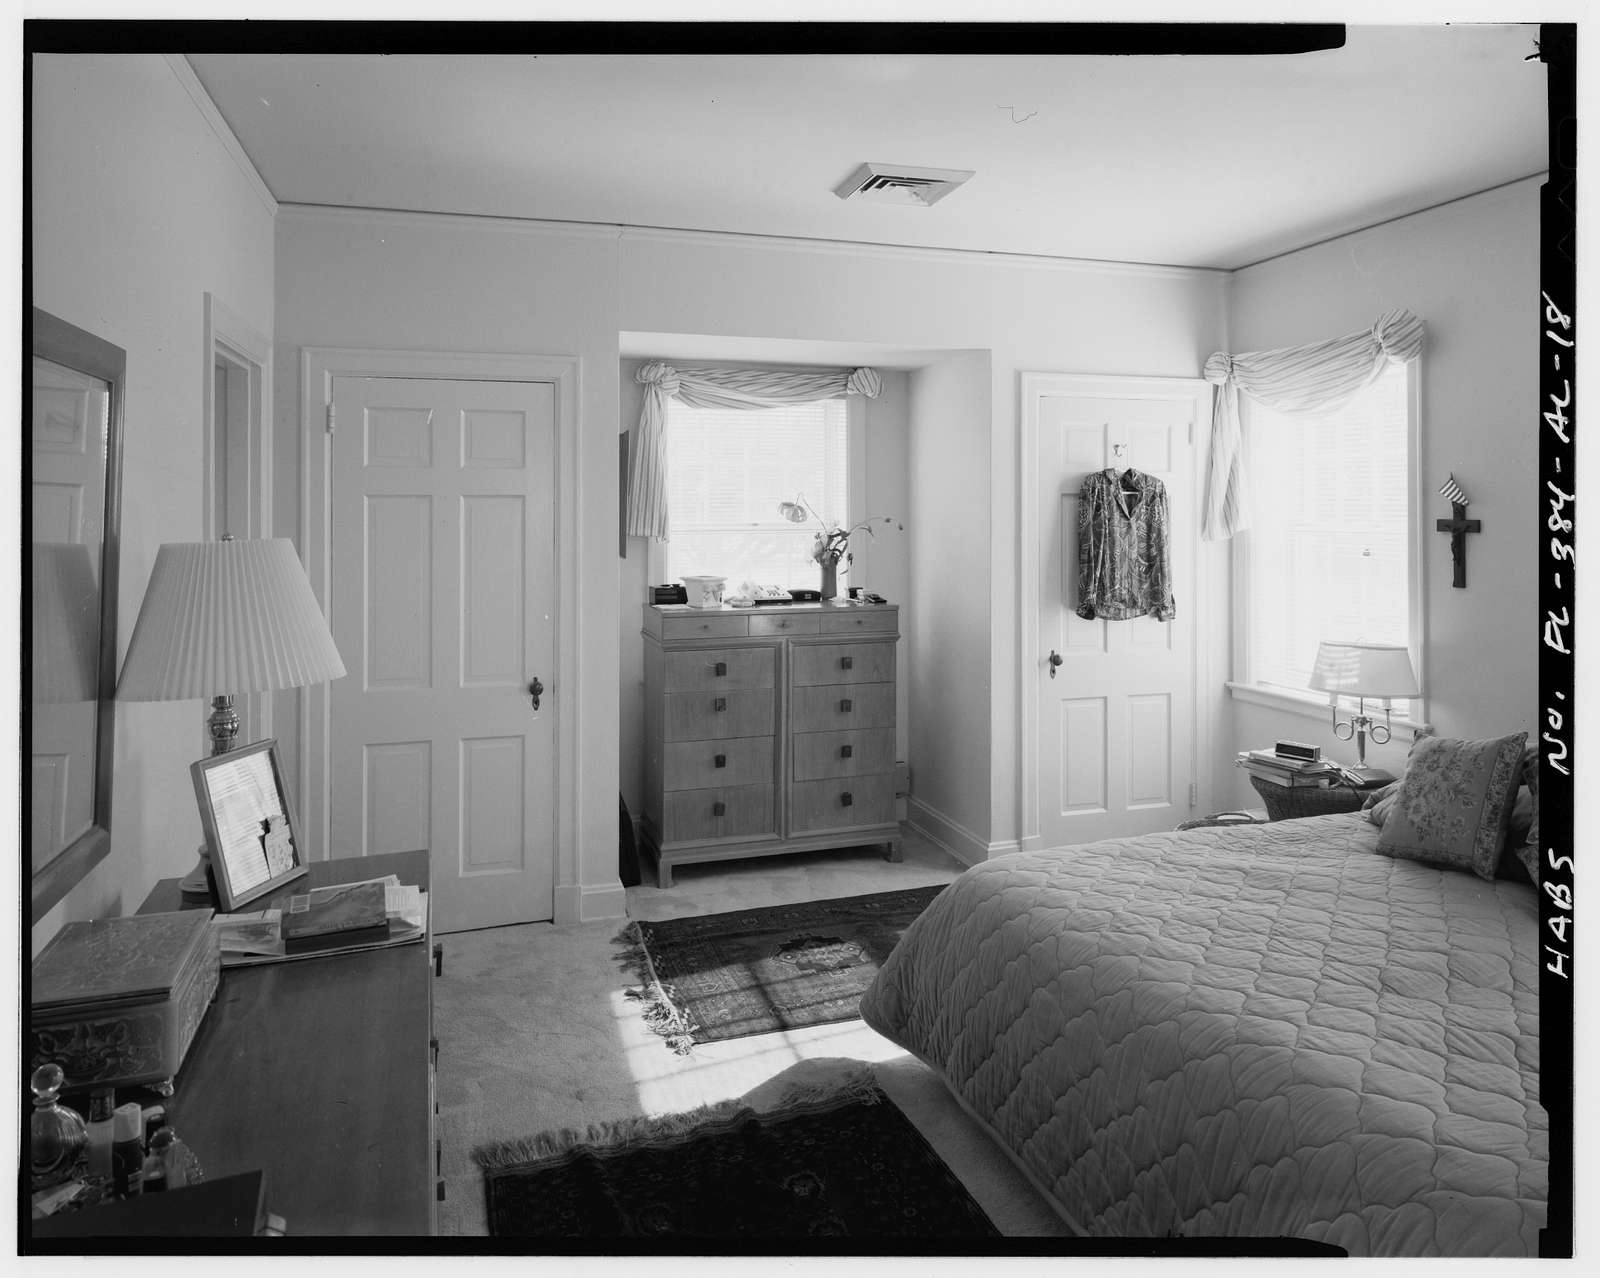 MacDill Air Force Base, Field Officers' Quarters, 2112 Staff Circle, Tampa, Hillsborough County, FL